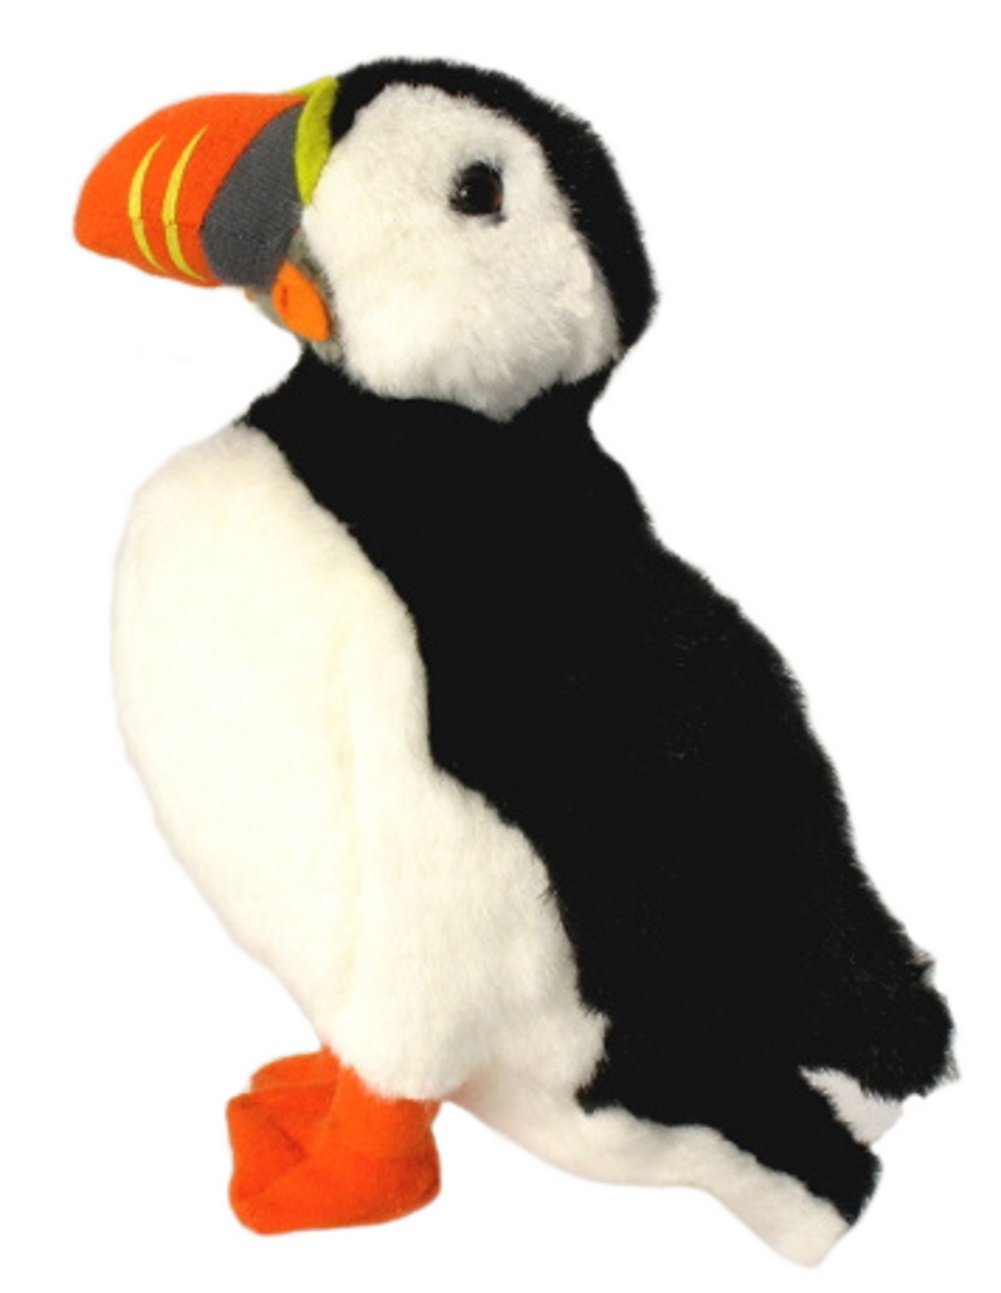 White Plush 2017 And Toy 3bs Puffin Hot 10 Black Wishpets Sale trxdhQsC